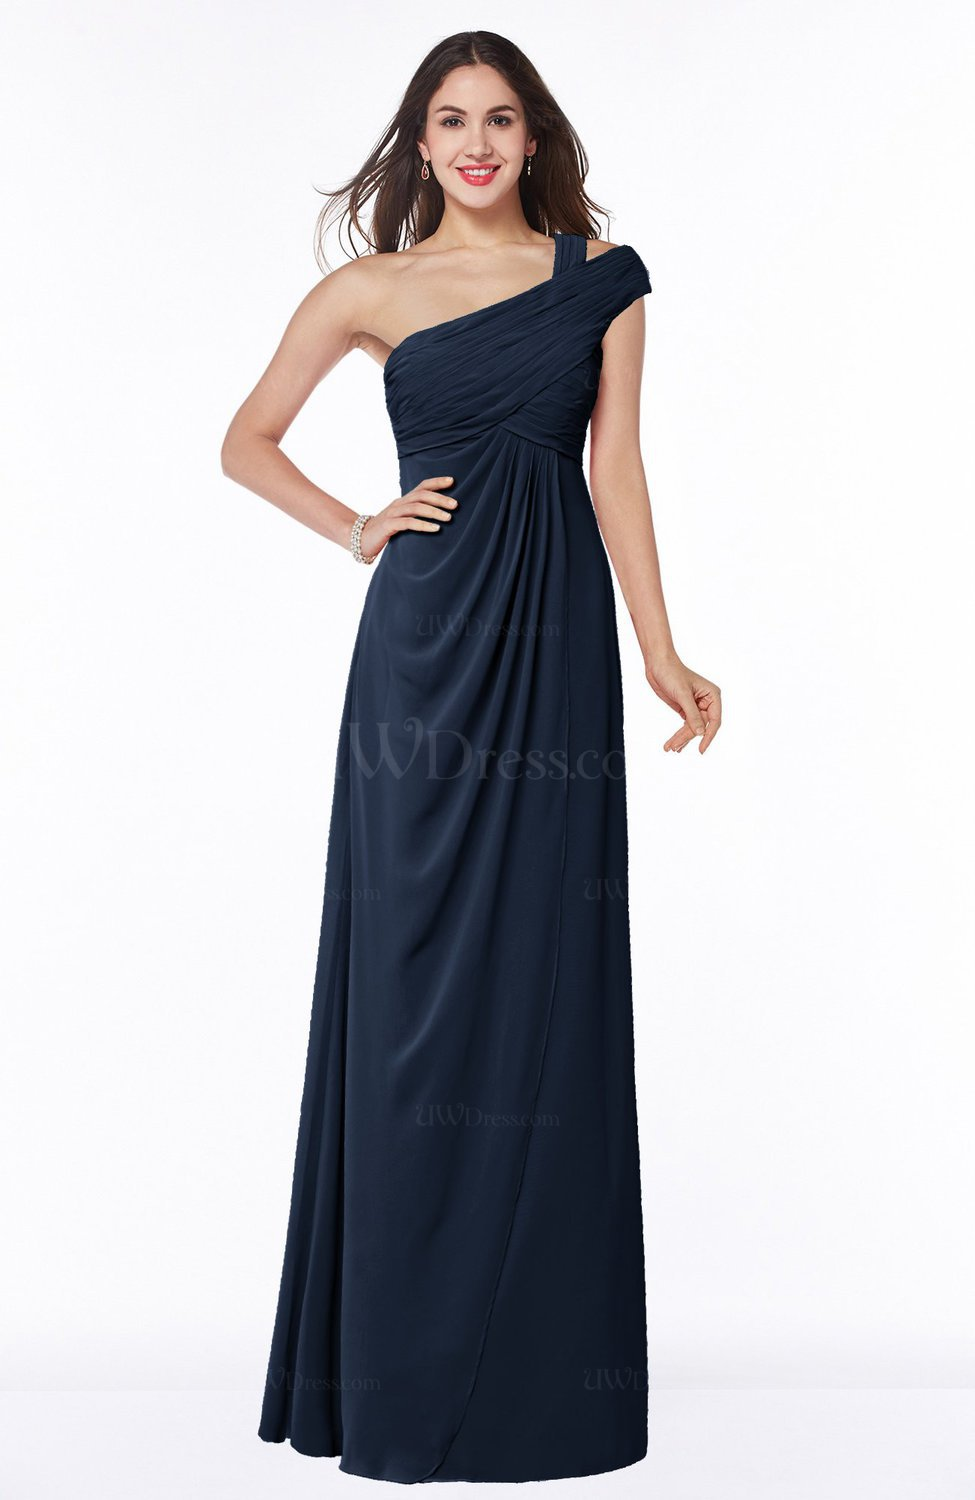 127b20dad1d Navy Blue Elegant One Shoulder Chiffon Floor Length Ruching Plus Size Bridesmaid  Dresses (Style D24205)